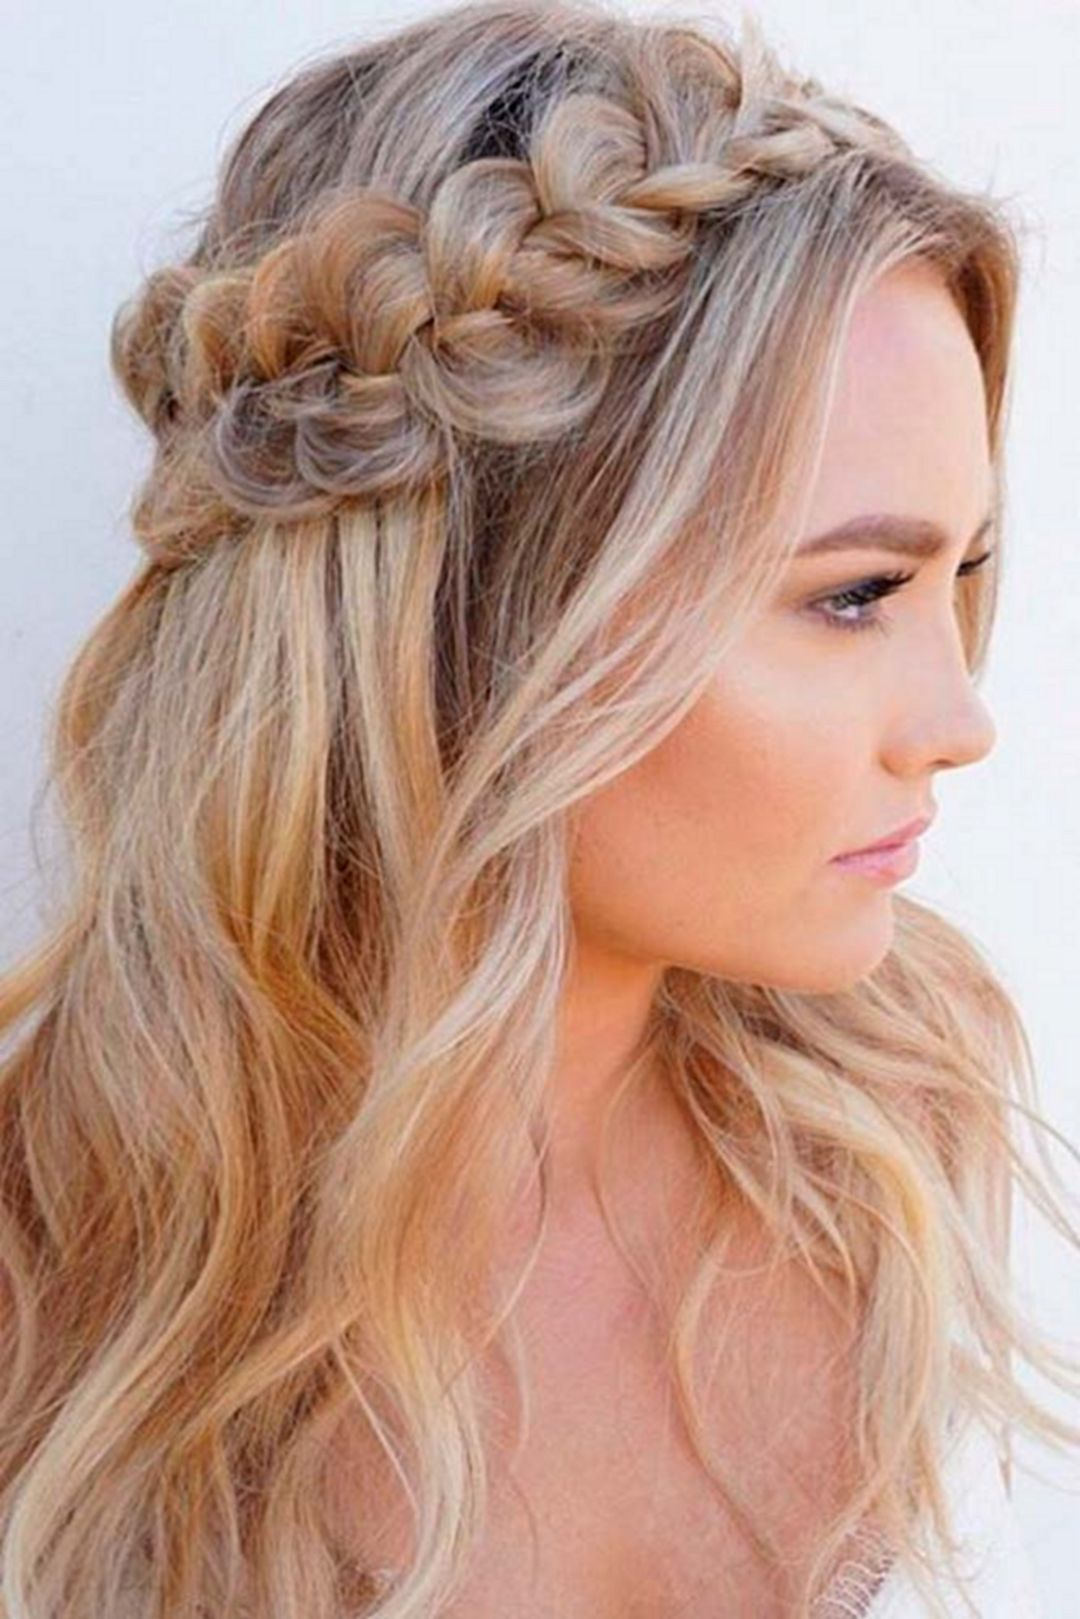 Stunning 30 Beautiful Semi Formal Women Hairstyle Ideas For Party Https Www Tukuoke Com Down Hairstyles For Long Hair Hair Styles Medium Length Hair Styles